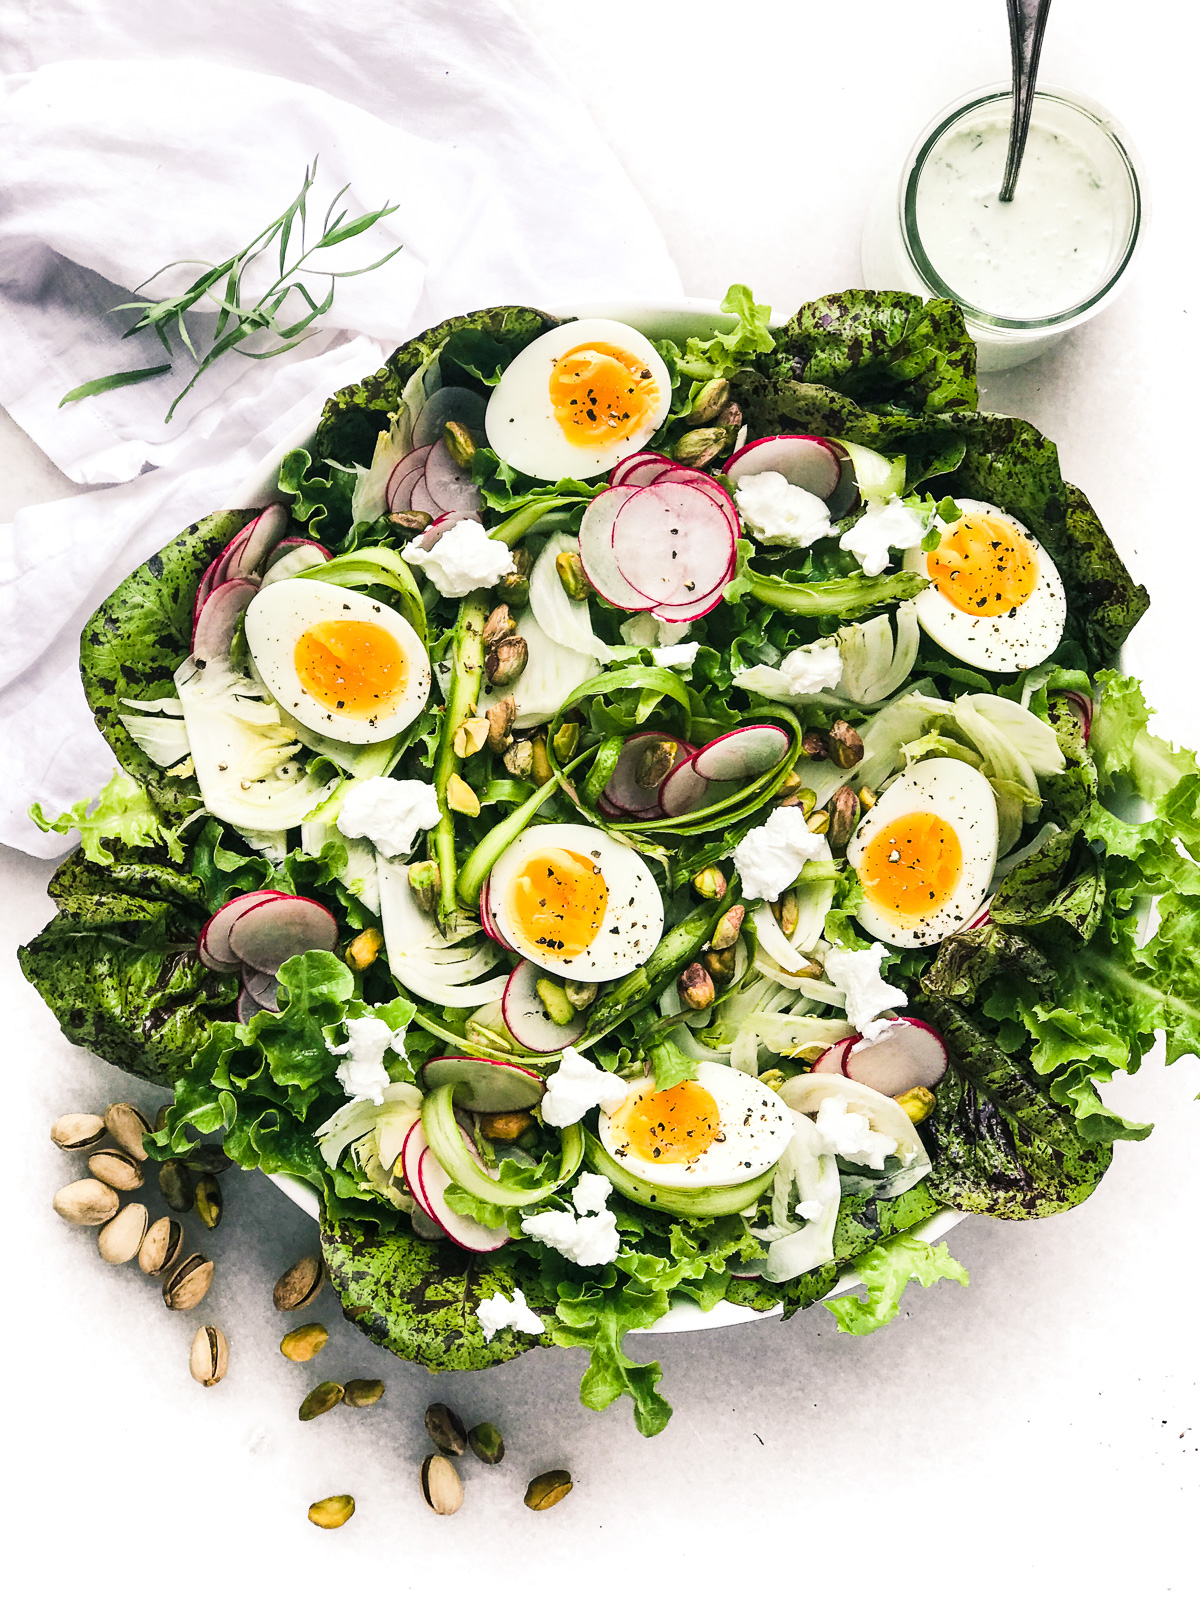 2. Spring Salad with Eggs and Creamy Tarragon Dressing